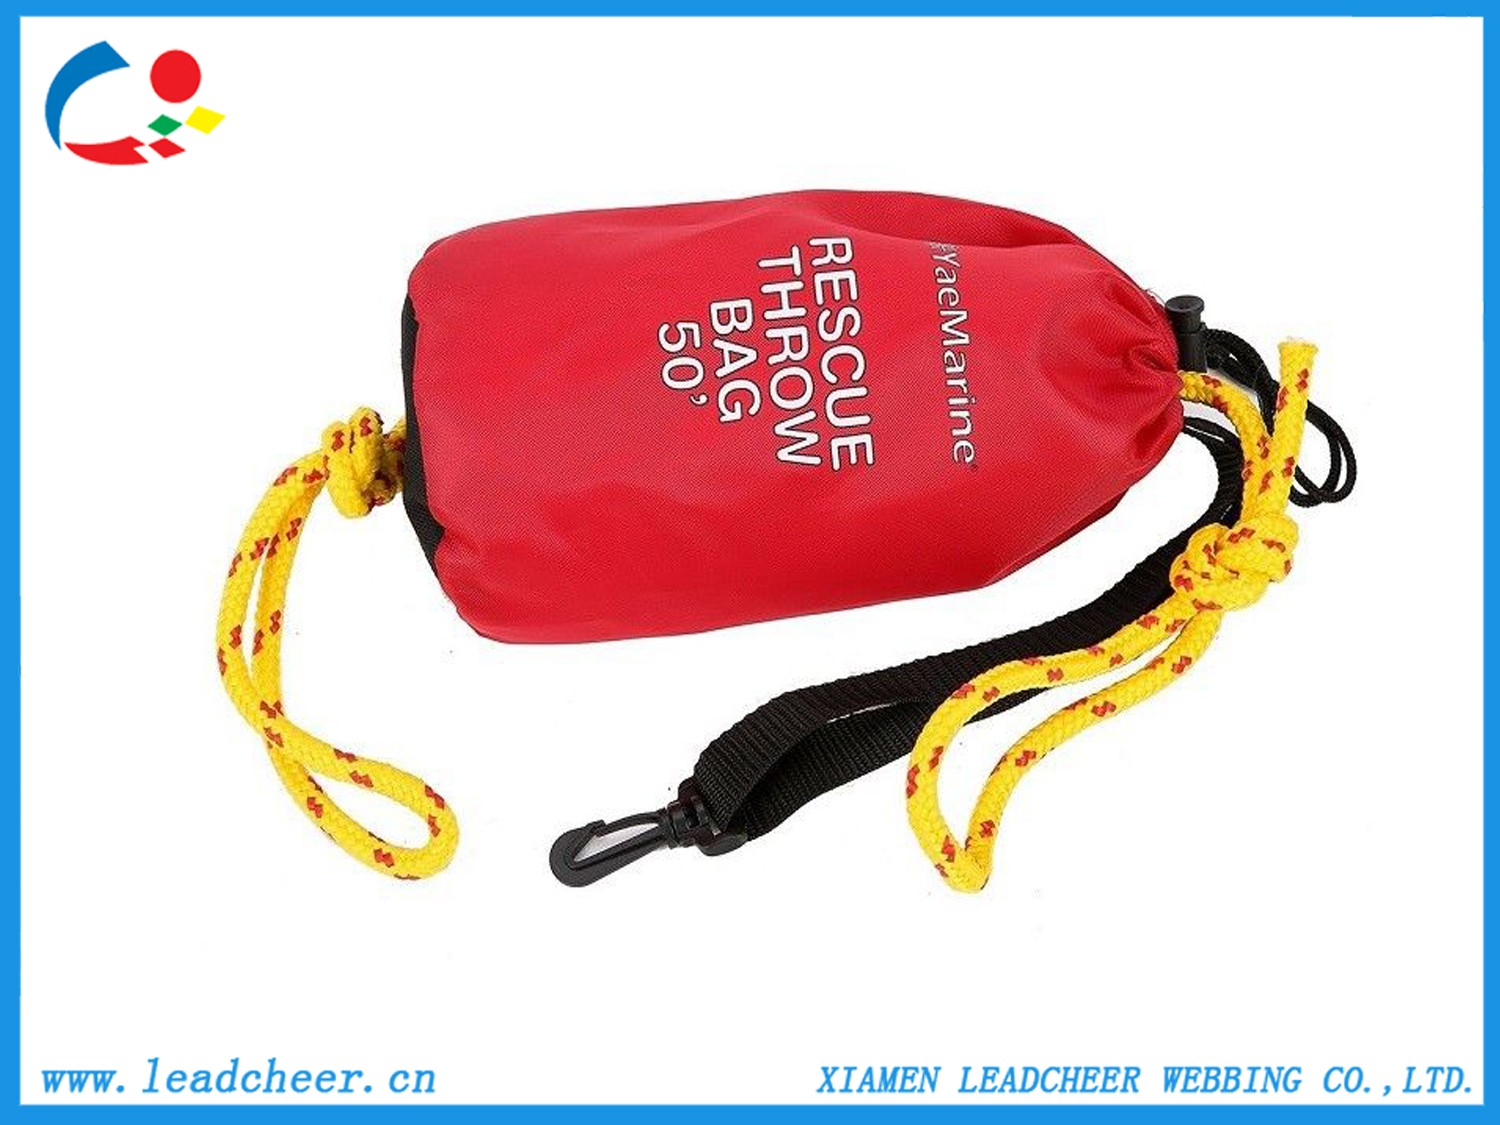 High quality Quick Release Waist Rescue Throw Bags For Water Rescue Quotes,China Quick Release Waist Rescue Throw Bags For Water Rescue Factory,Quick Release Waist Rescue Throw Bags For Water Rescue Purchasing